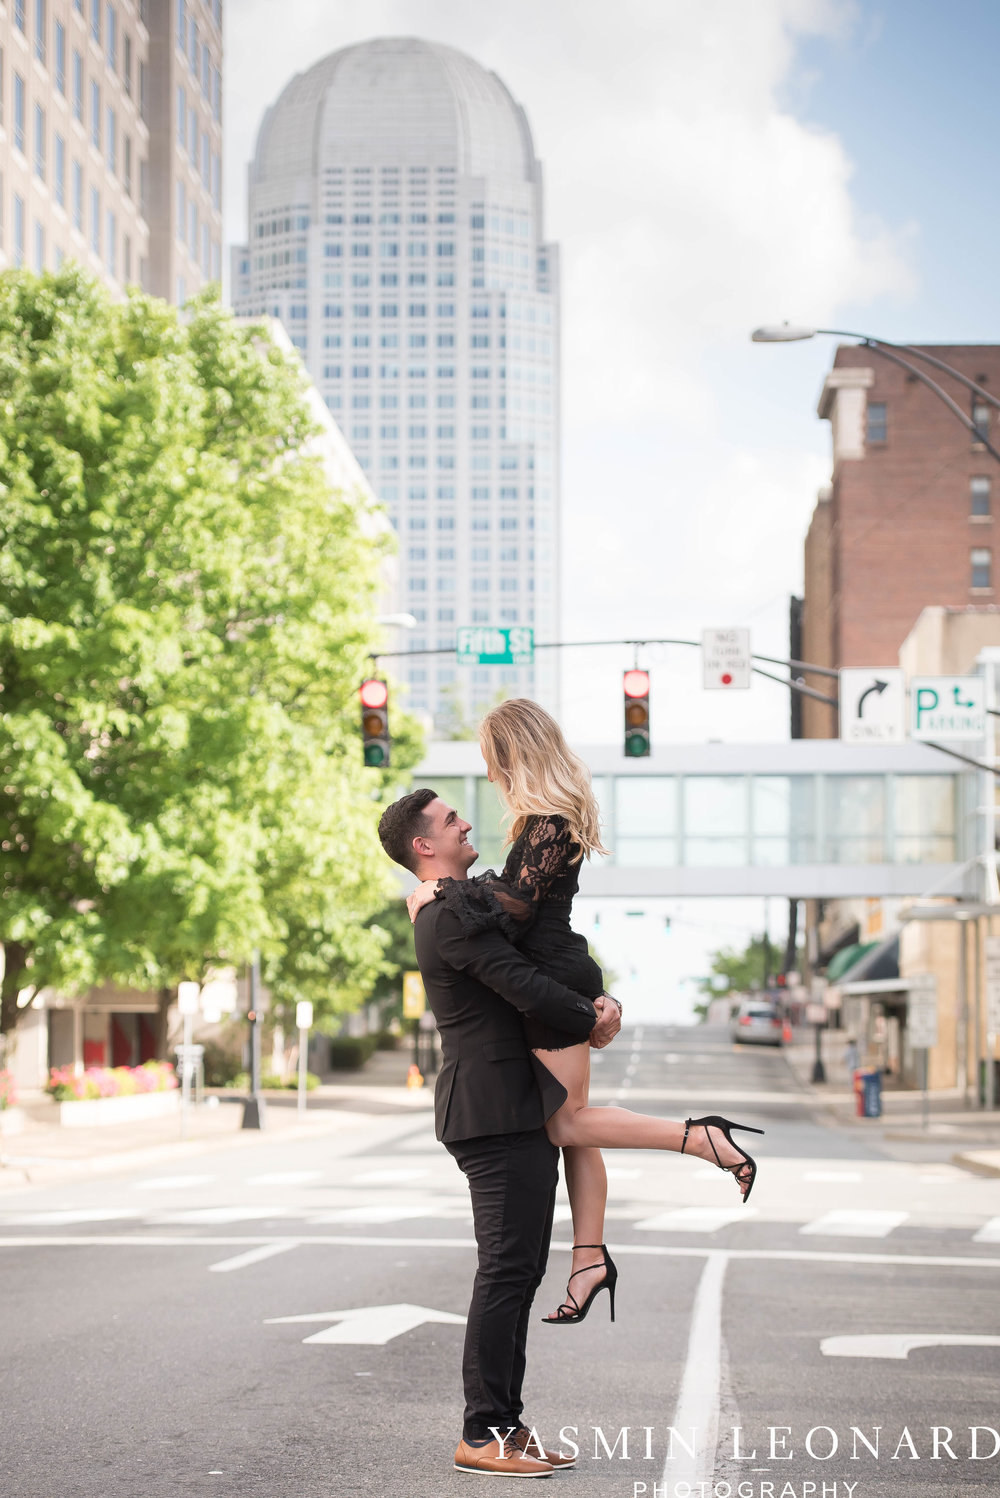 Downtown Winston Salem Engagement Session - NC Engaged - NC Weddings - Winston Salem Weddings - Yasmin Leonard Photography-6.jpg